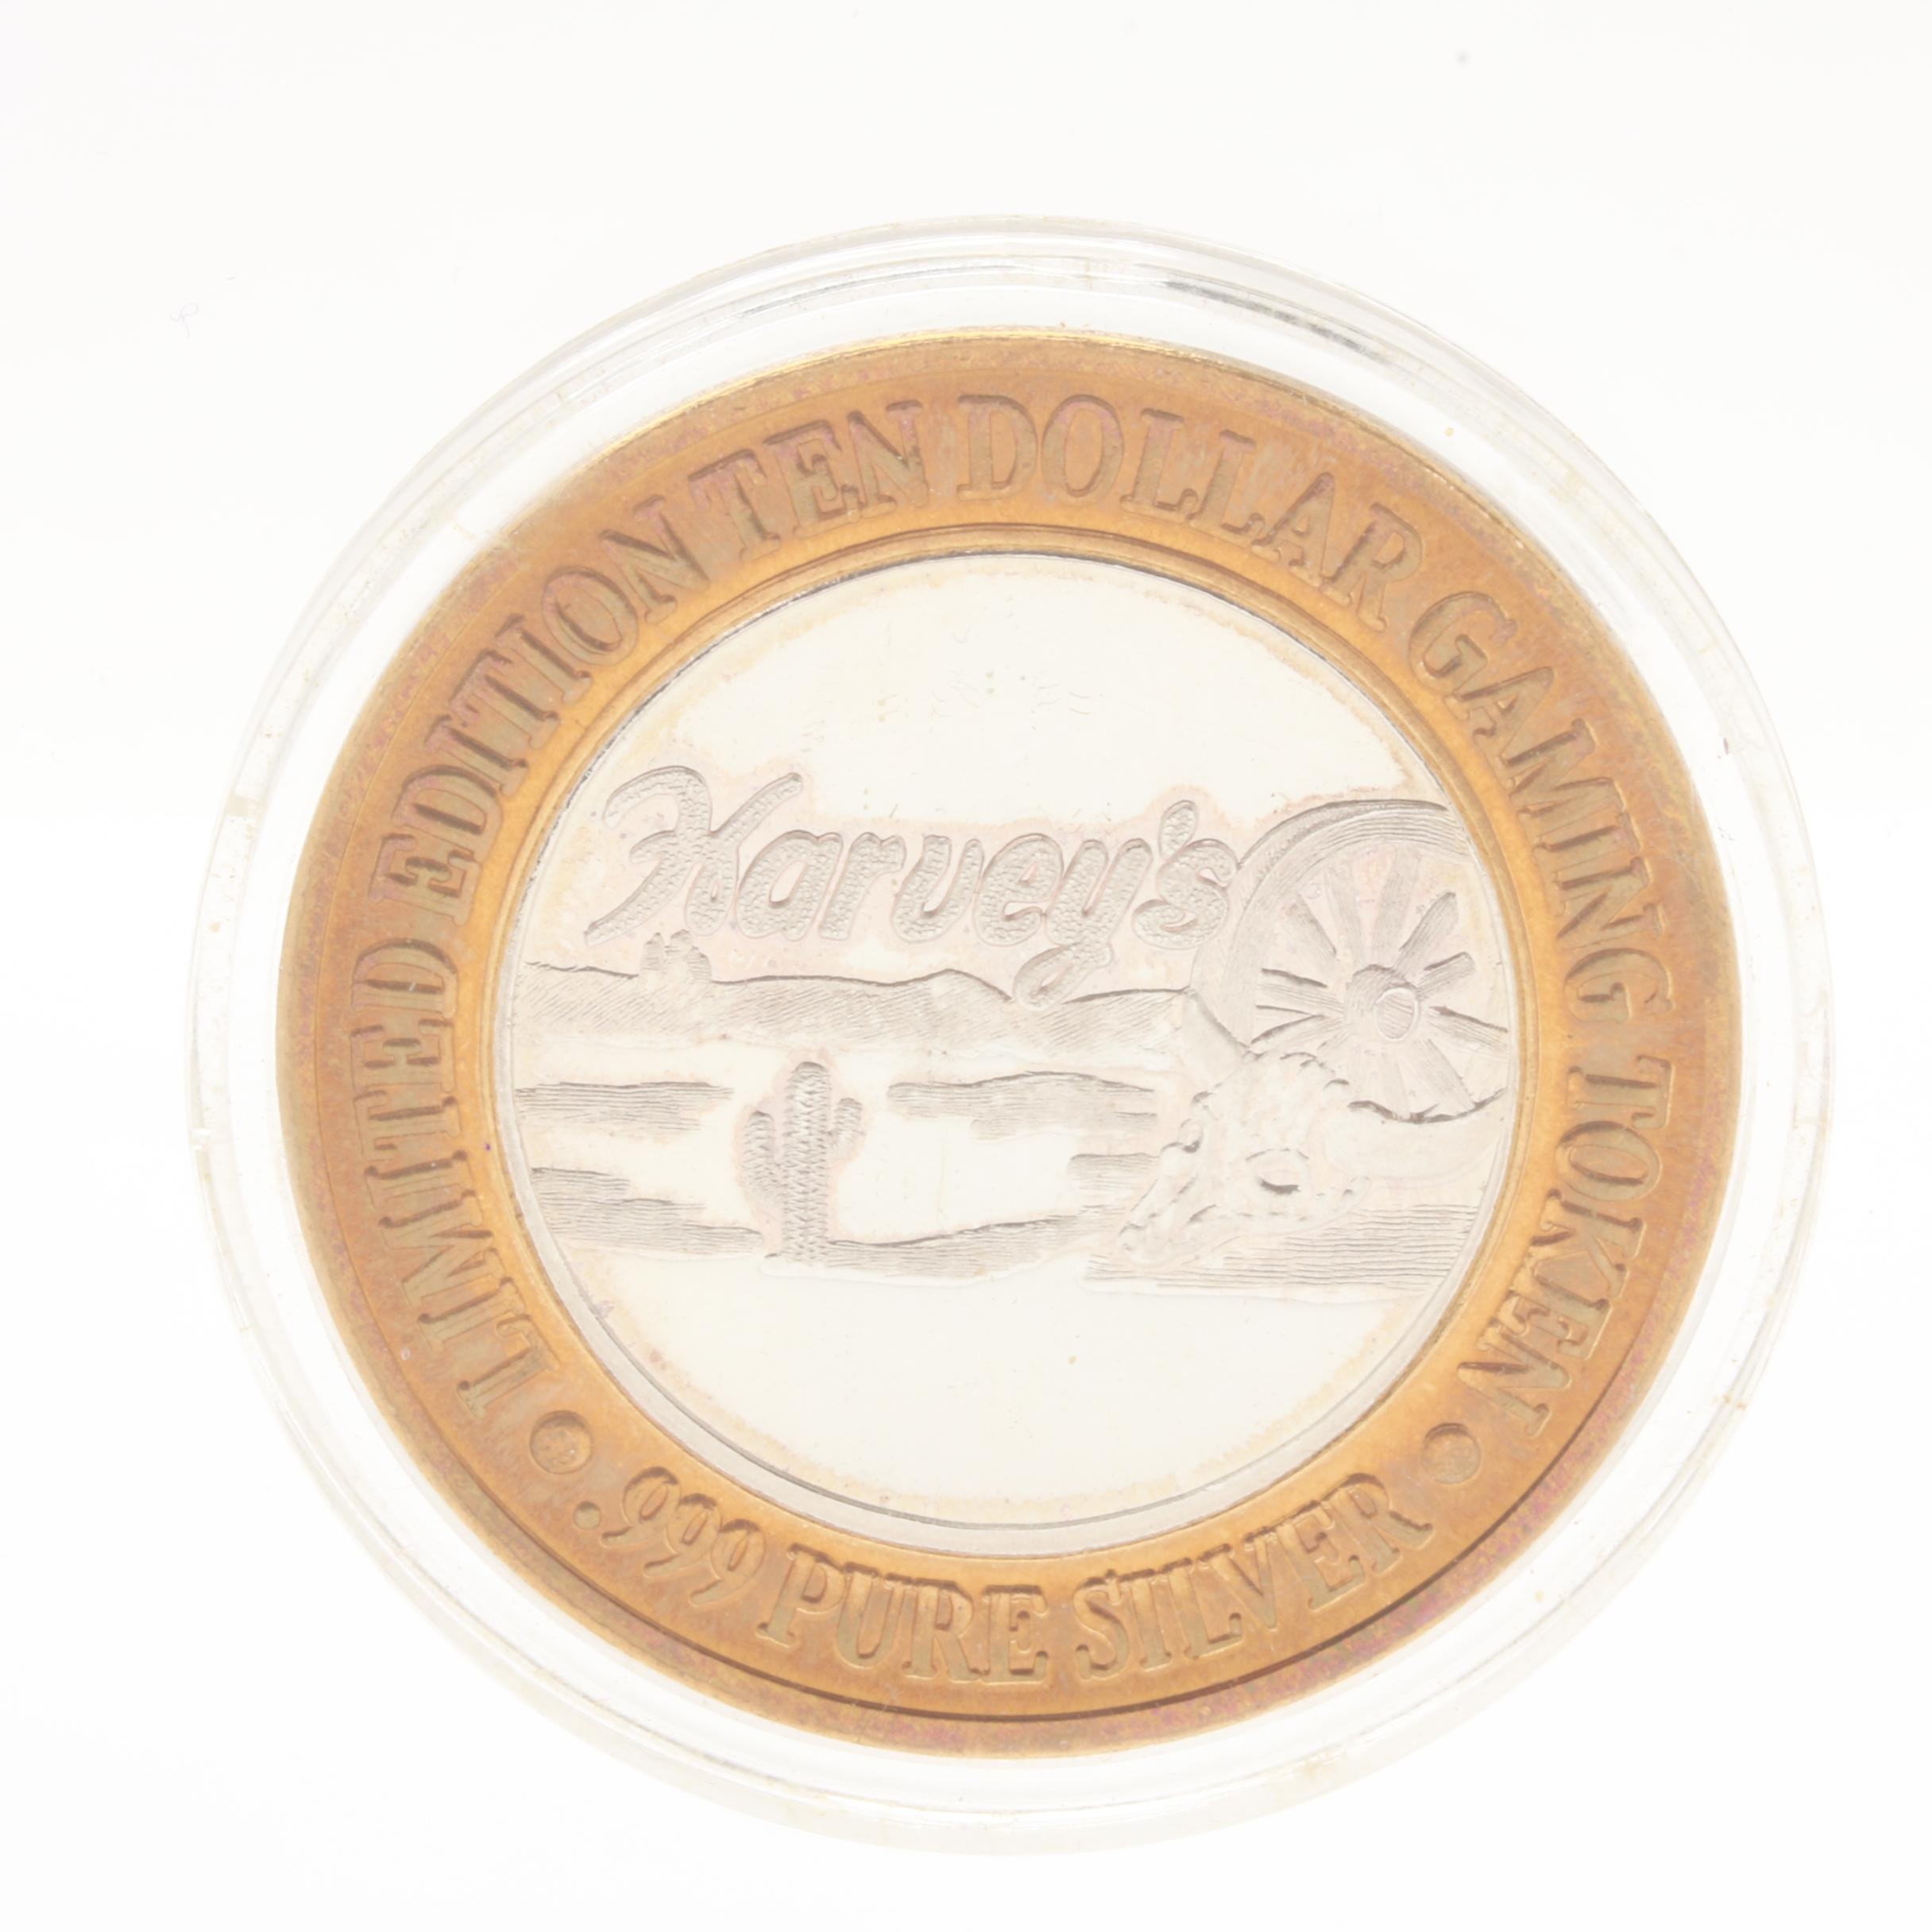 Limited Edition Fine Silver and Copper Harveys Gaming Token